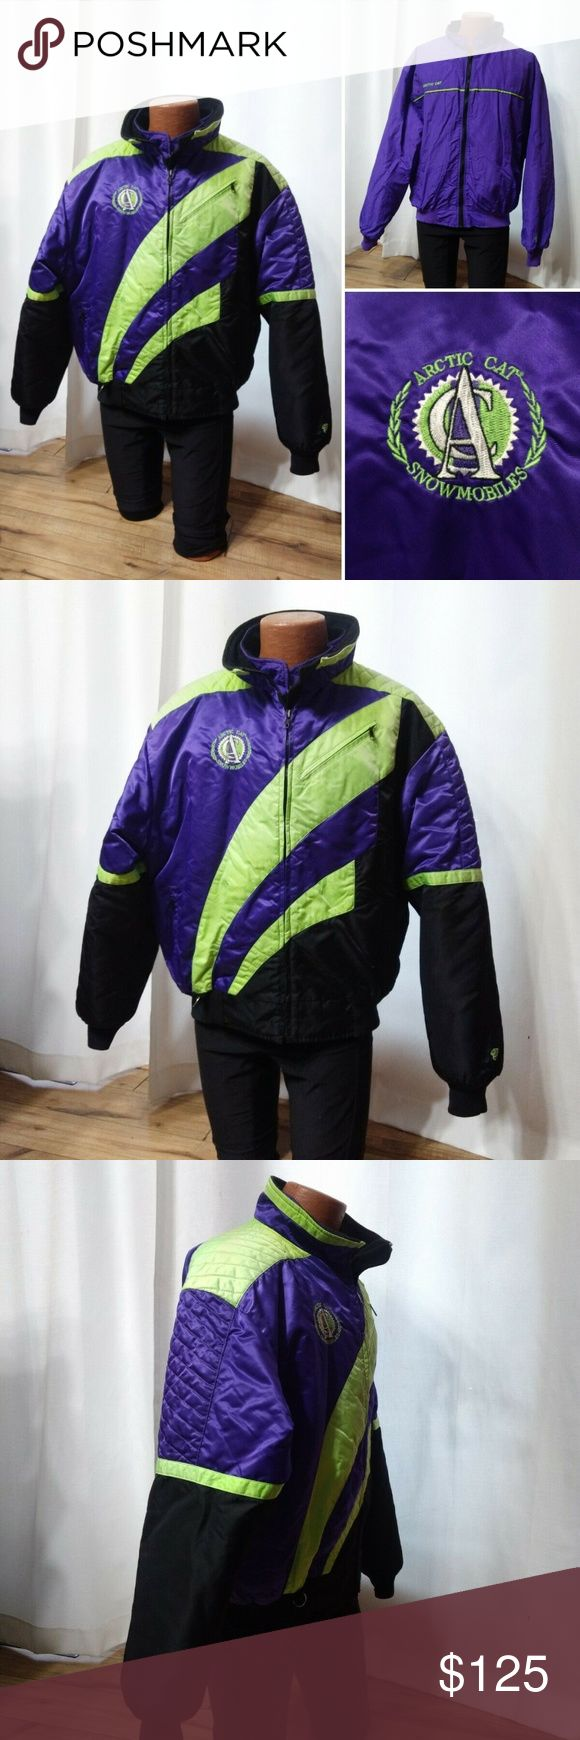 Vintage 90's Arctic Cat Snowmobile 2 in 1 Coat XL Coat